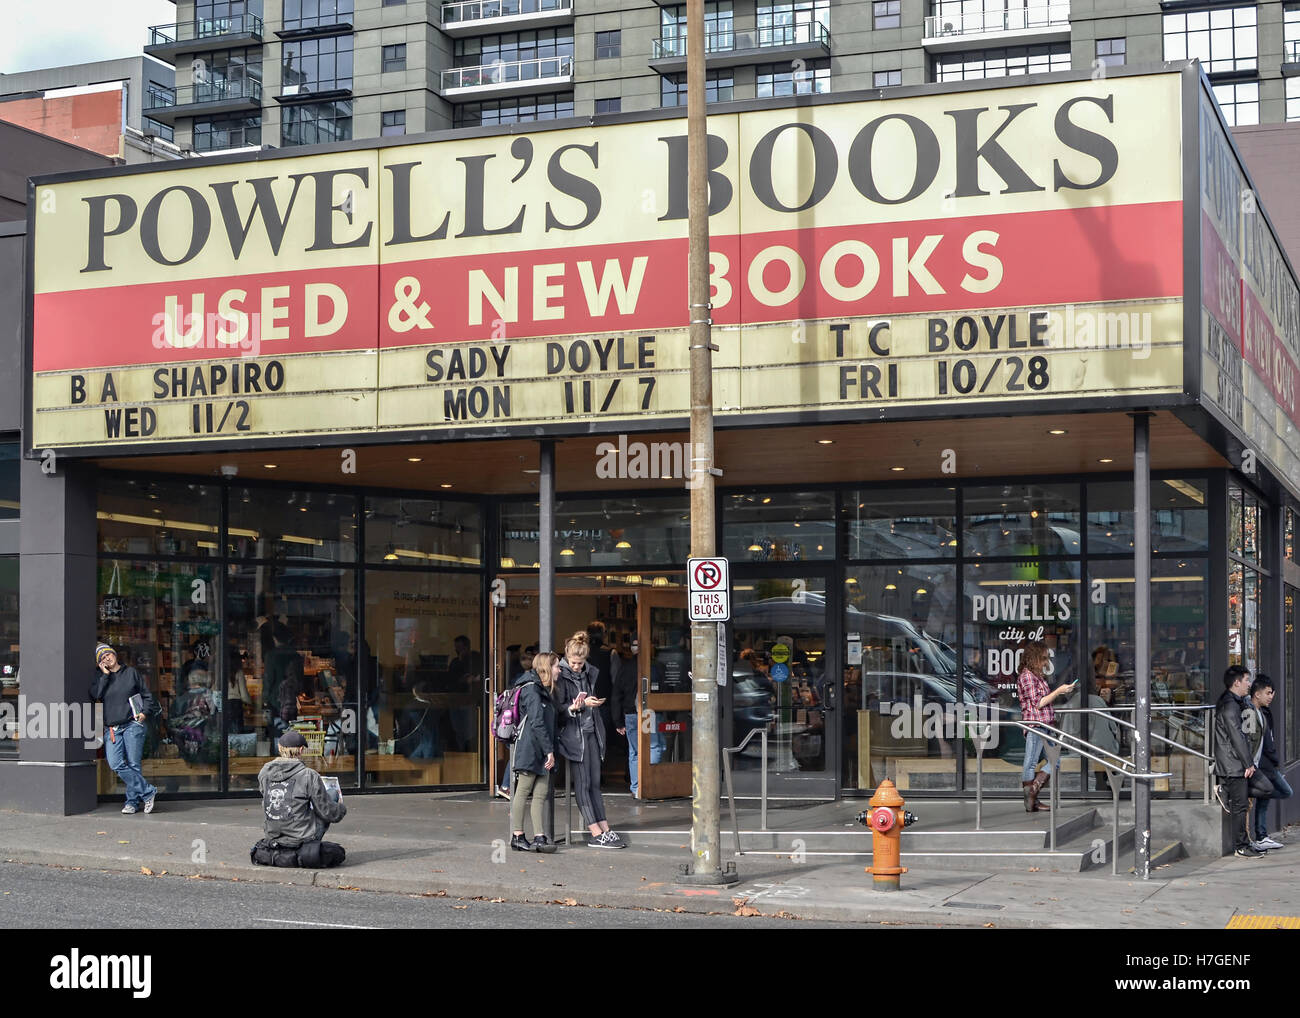 Entrance of the famous Powell's Books in Portland, Oregon, crowded with customers and passer byers. - Stock Image